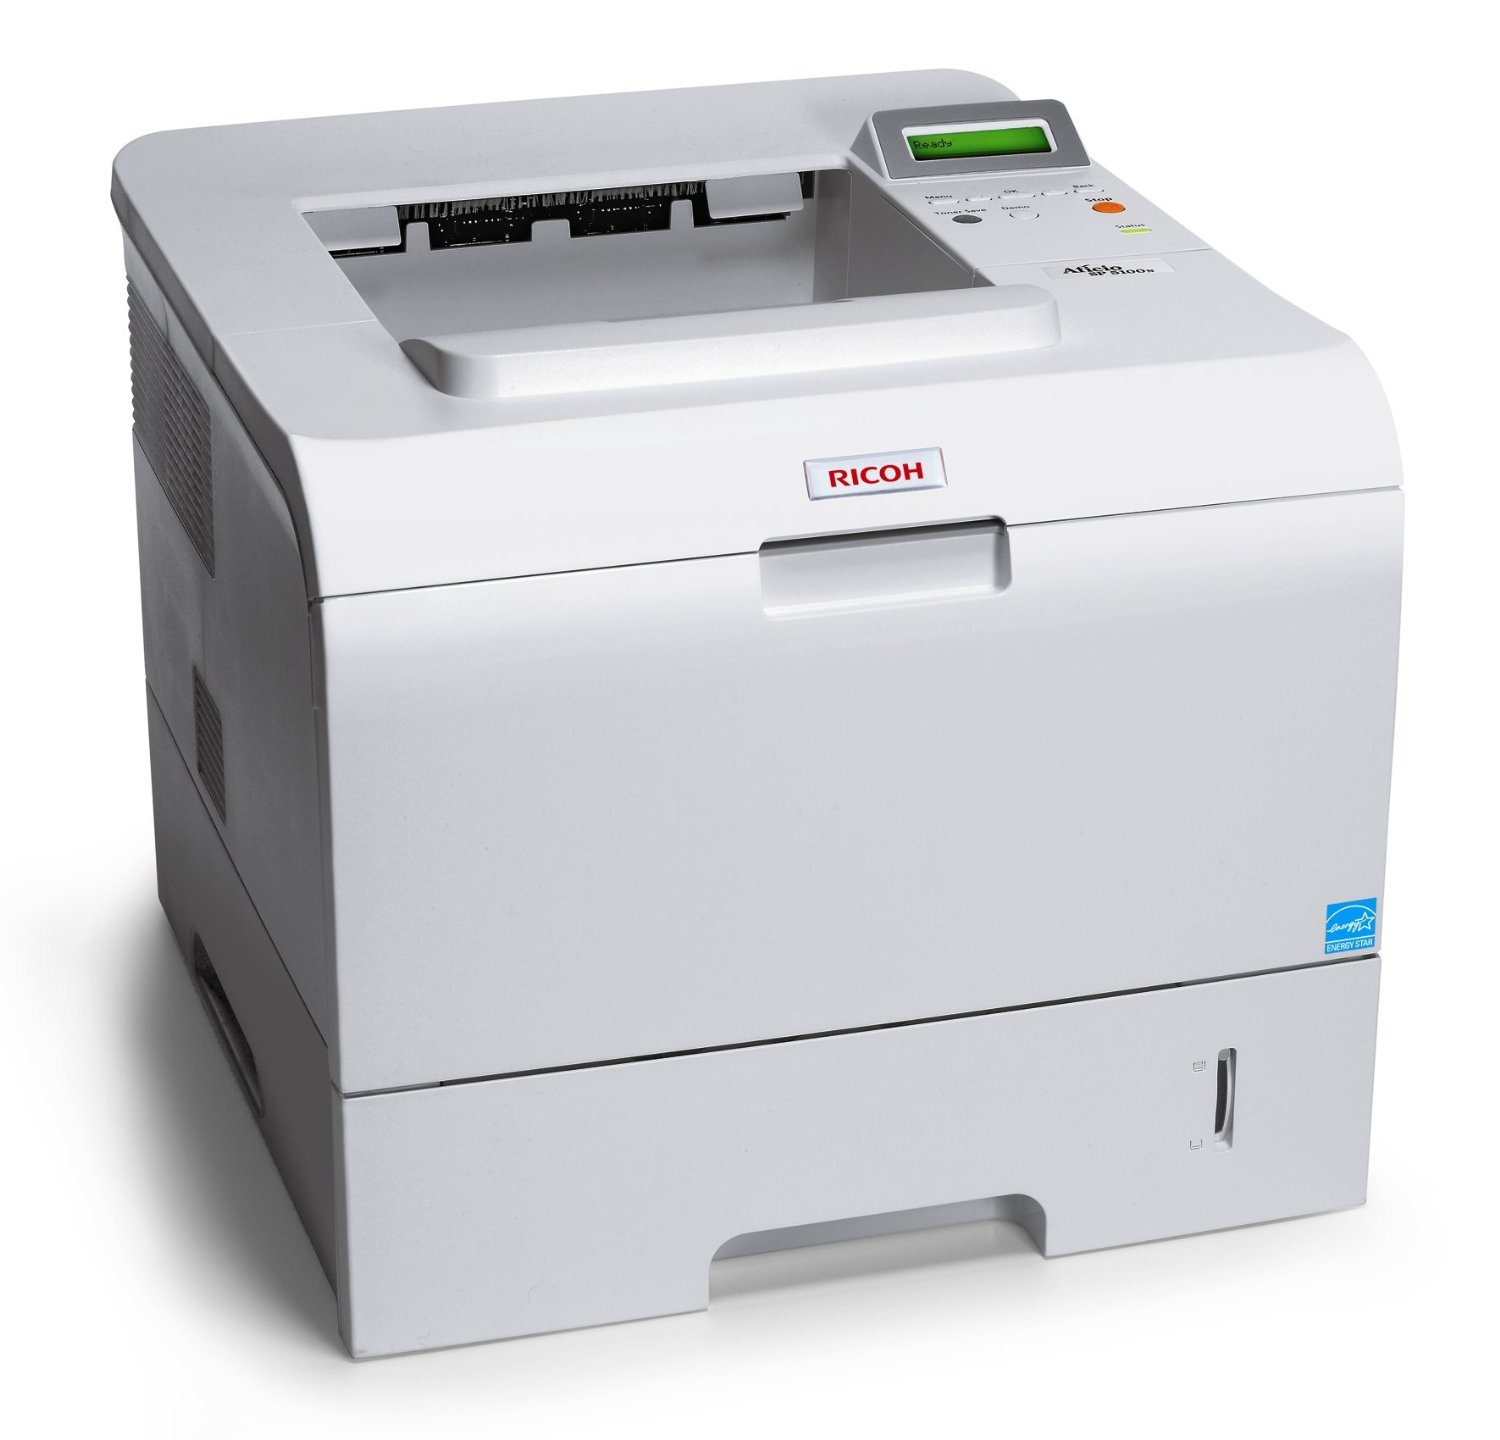 How To Update Driver For Ricoh Printer